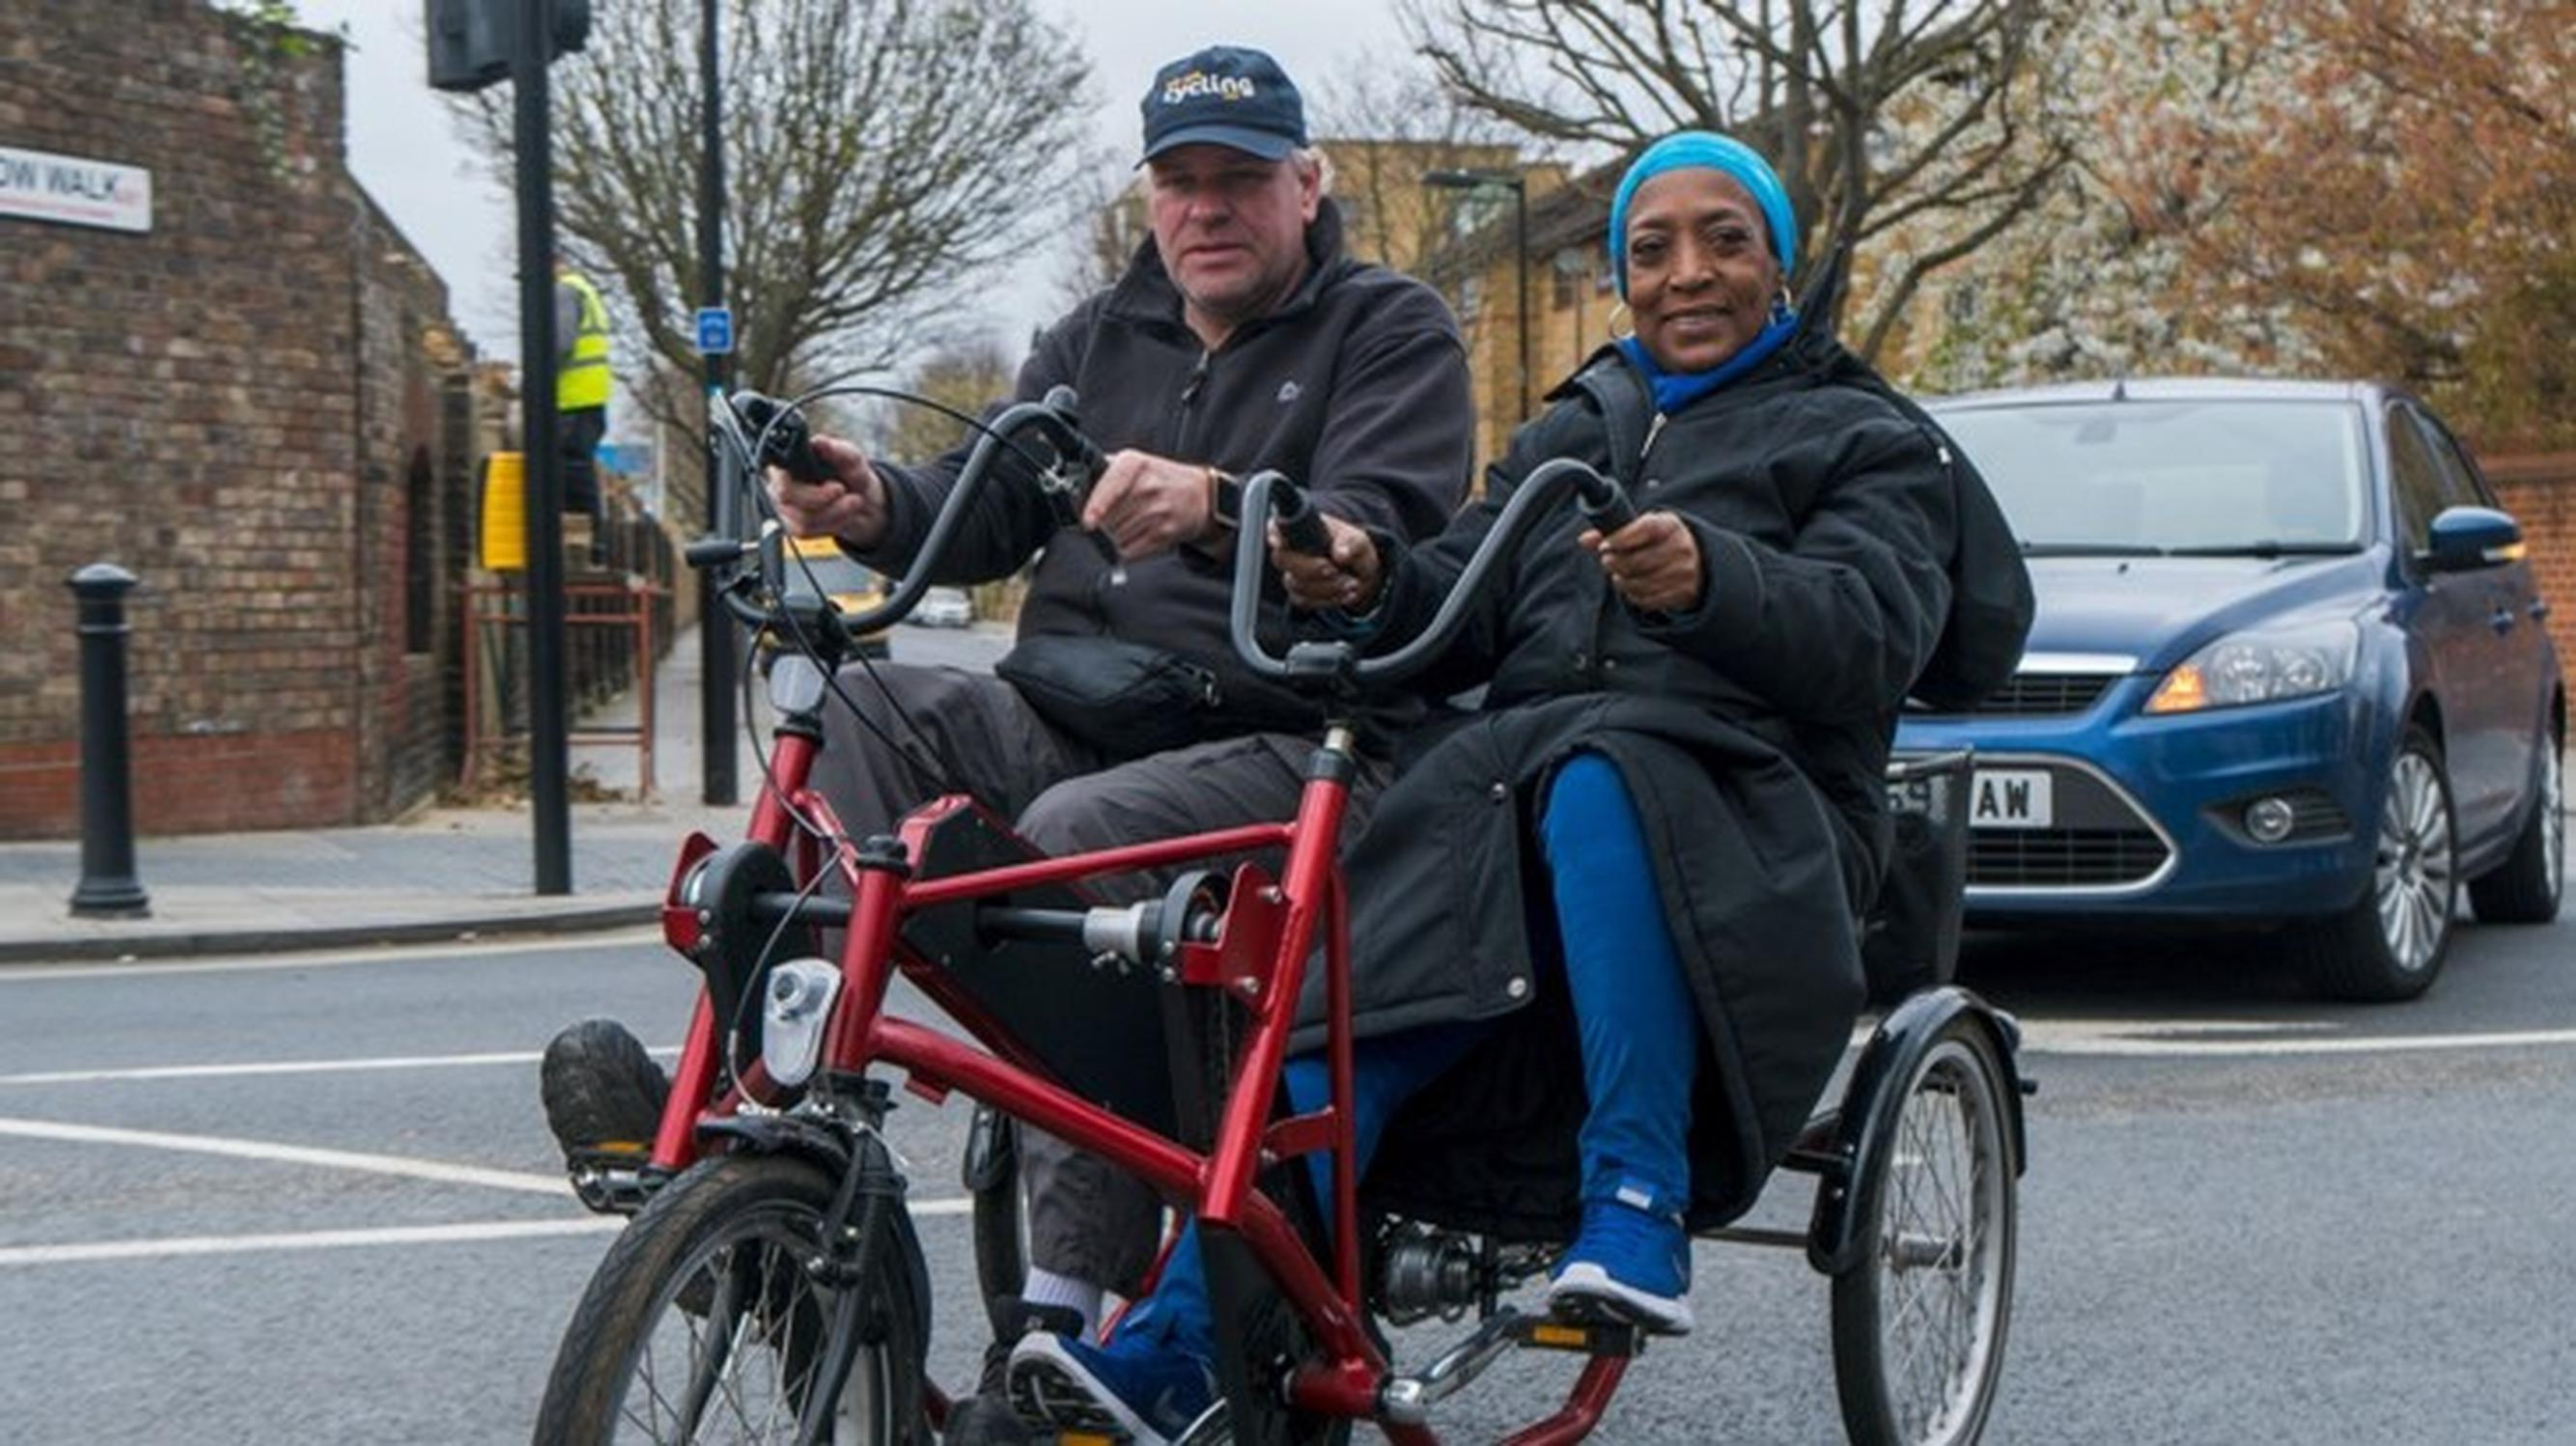 55% of people from ethnic minority groups who never cycle would like to start; and 38% of people at risk of deprivation, 36% of women, and 31% of disabled people who do not cycle say they would like to give it a go